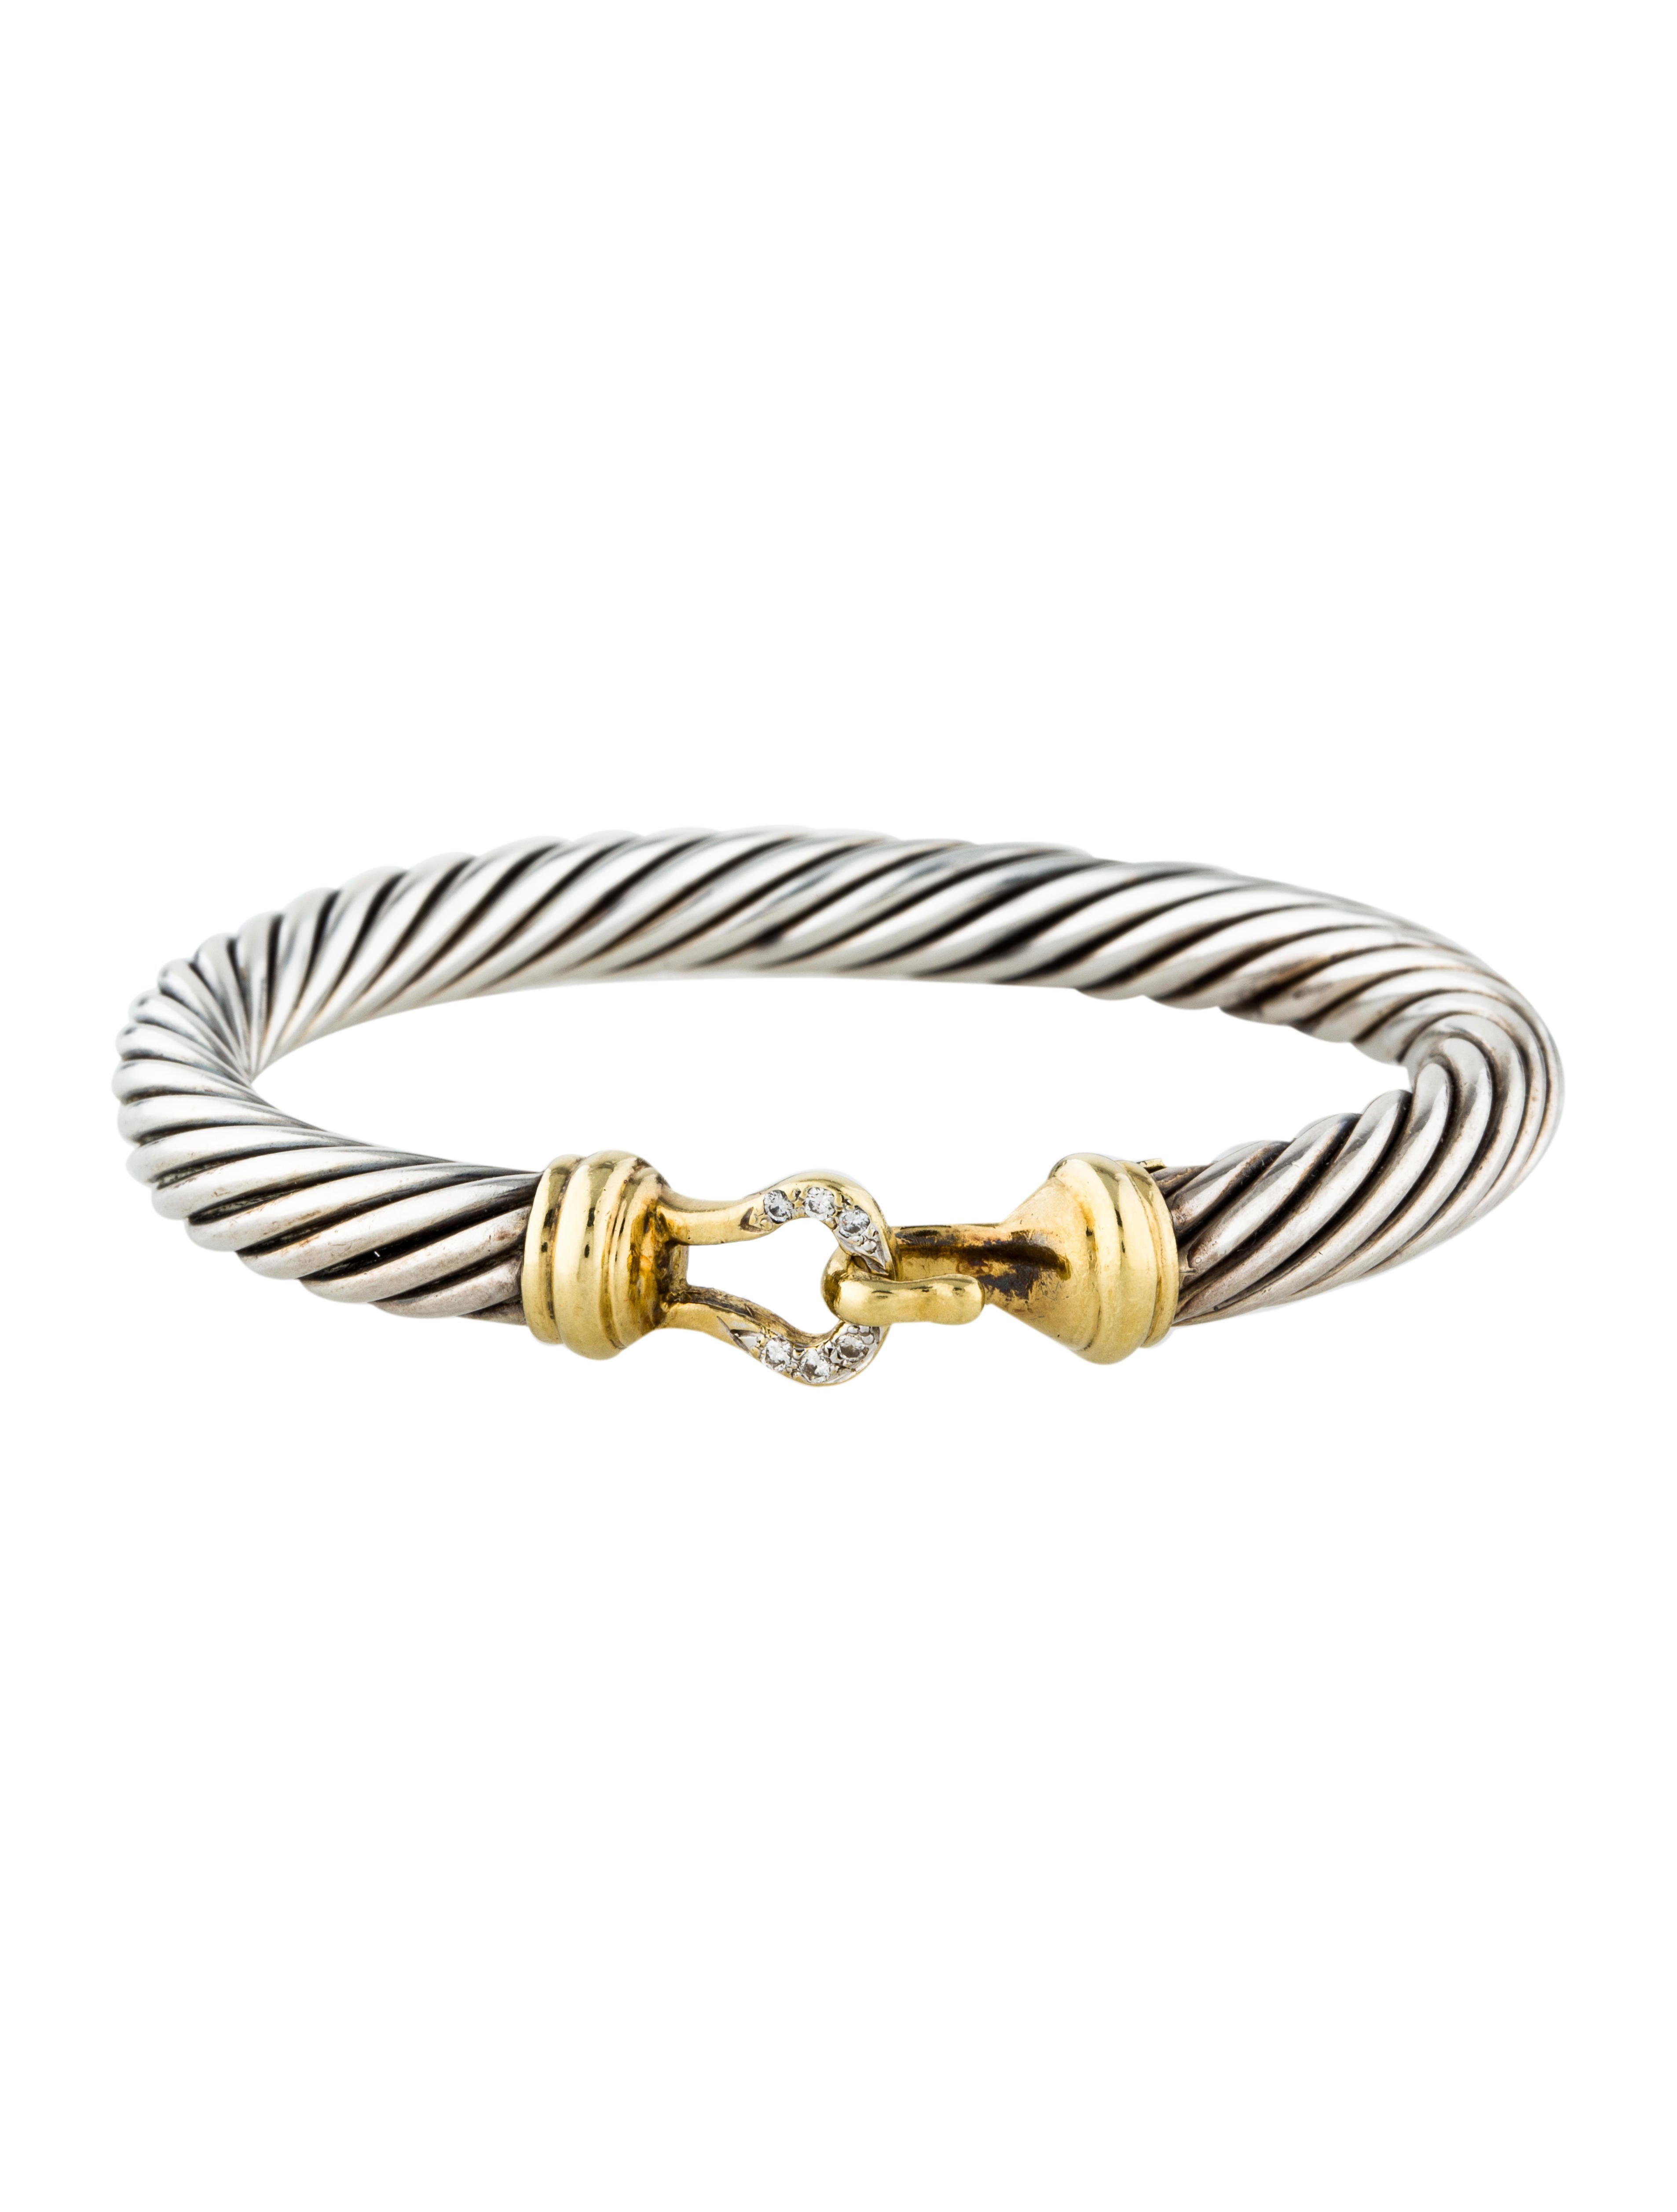 Jewelry Bracelets David Yurman Diamond Cable Buckle Bangle